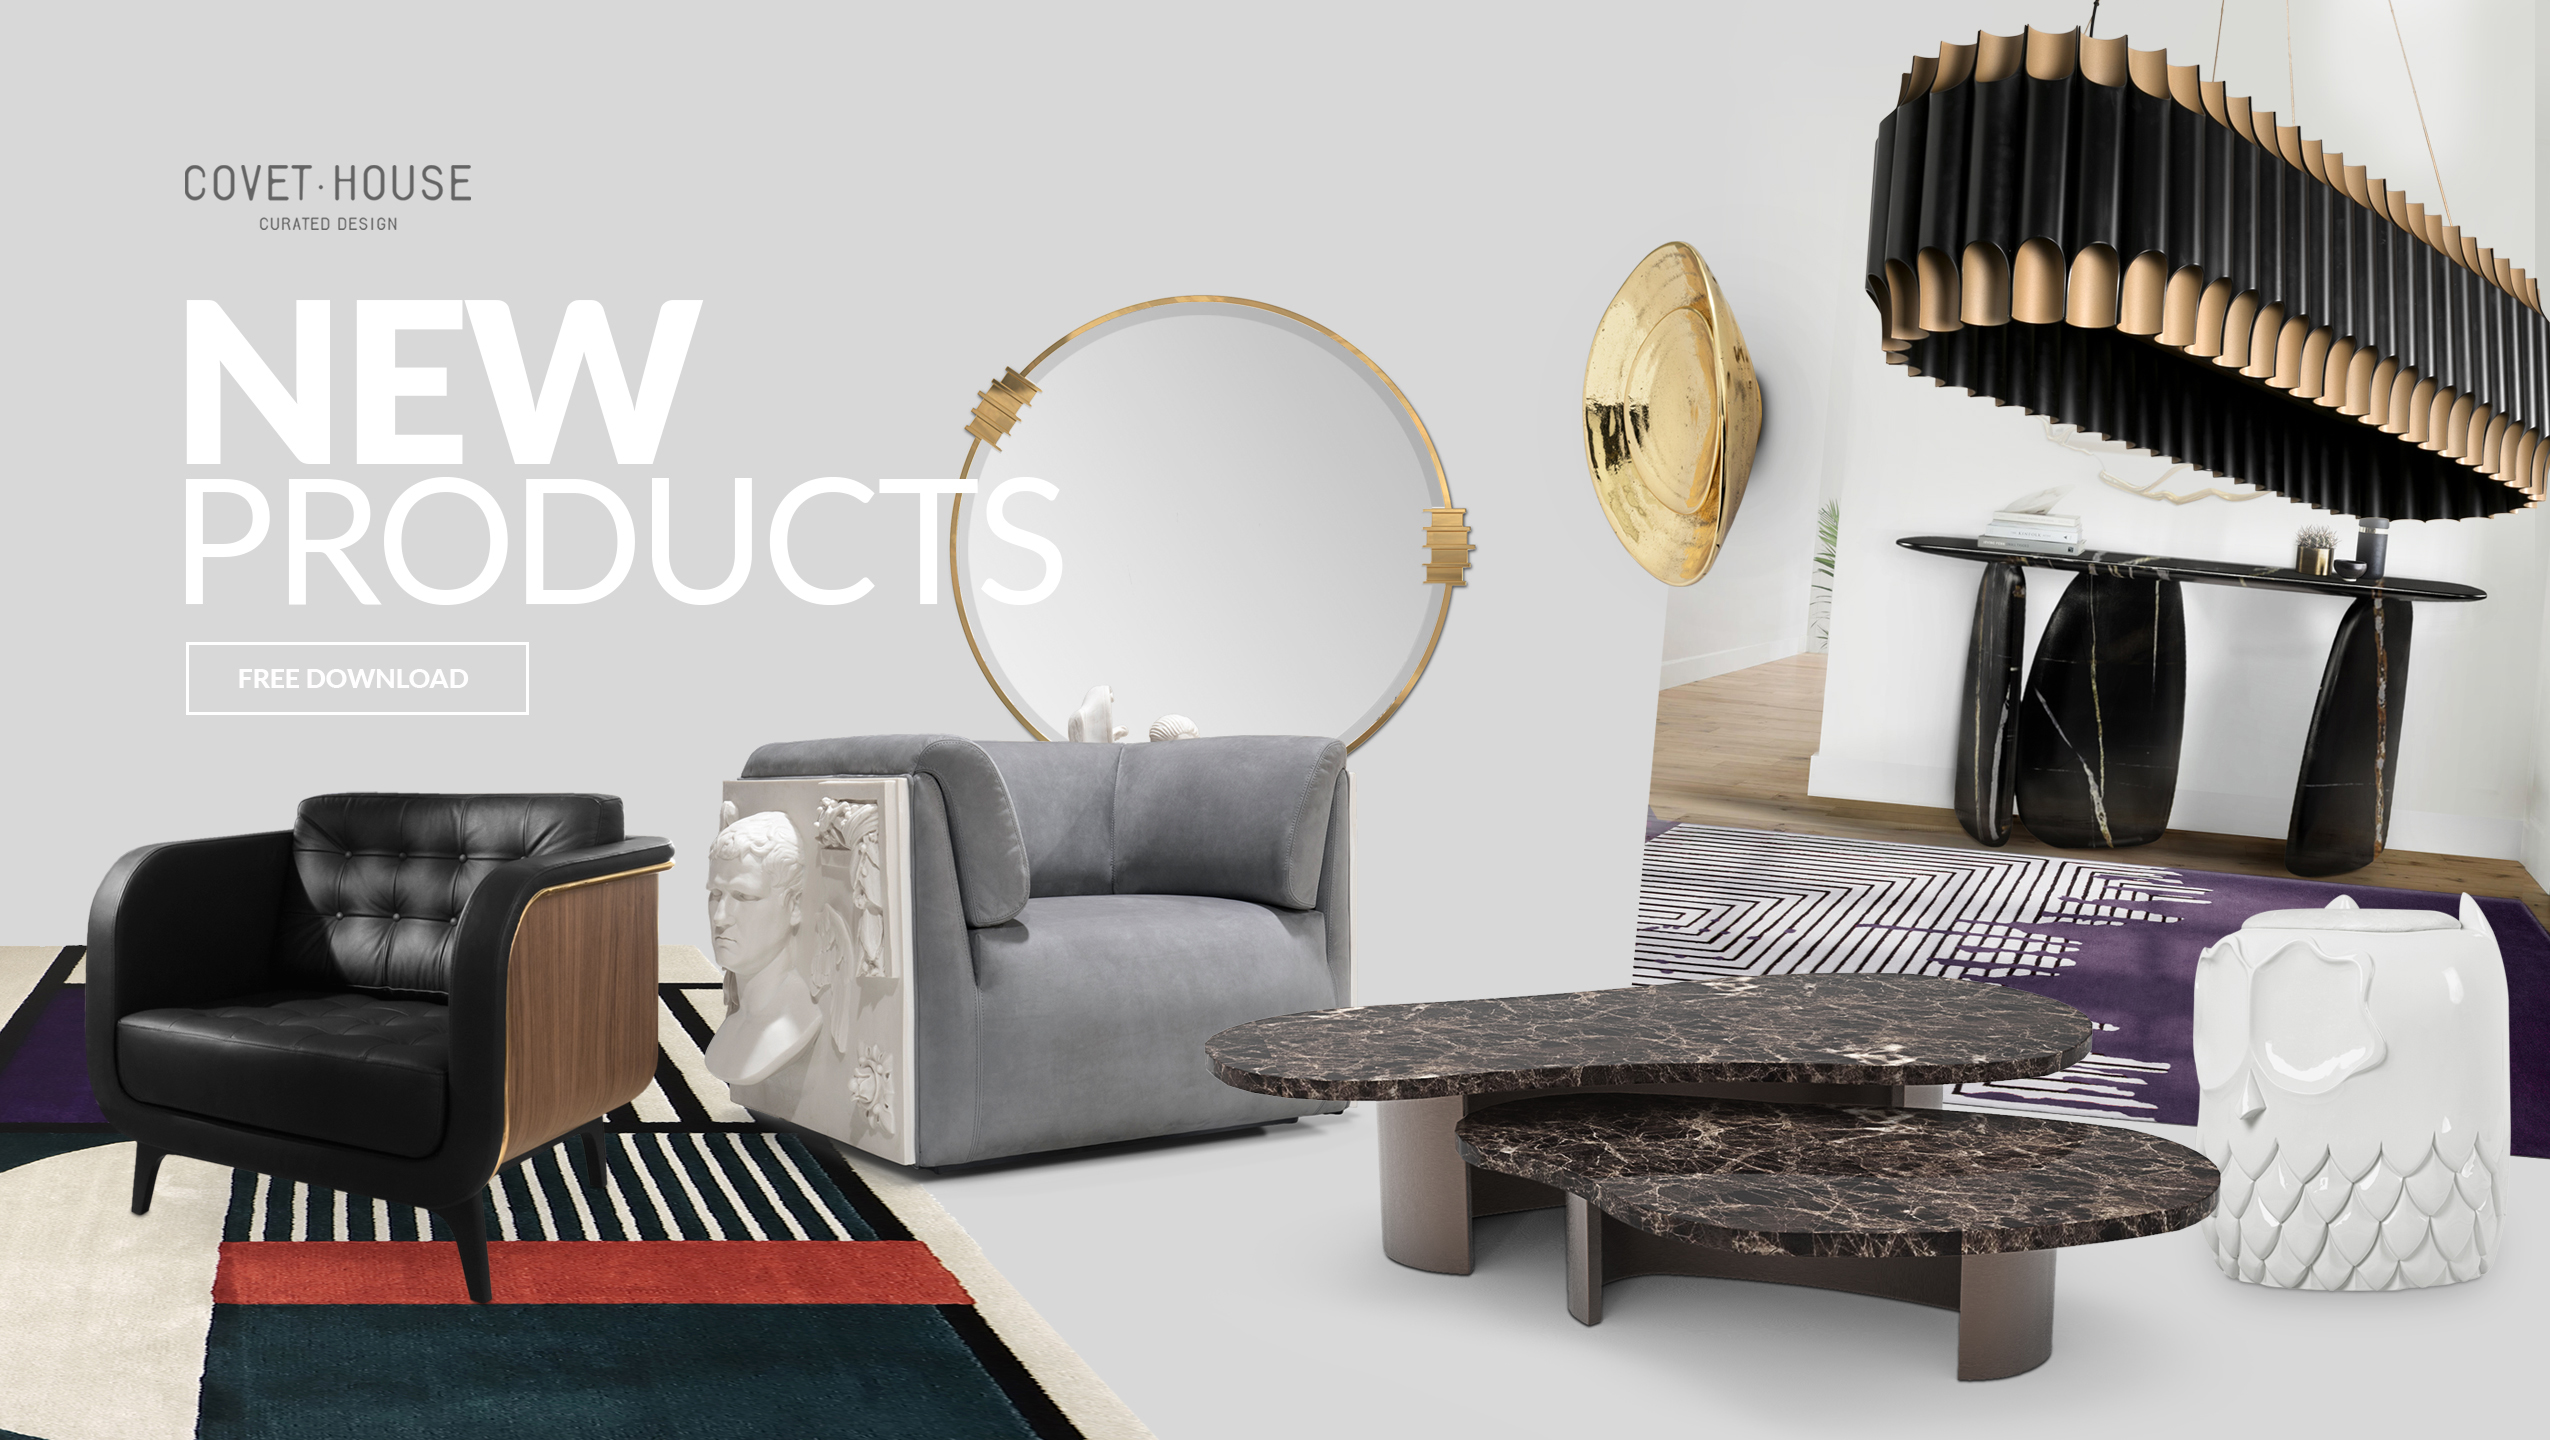 New Products 2020 maison et objet This Top Ebook Shows The Best Products Presented At Maison et Objet! newproducts cta1